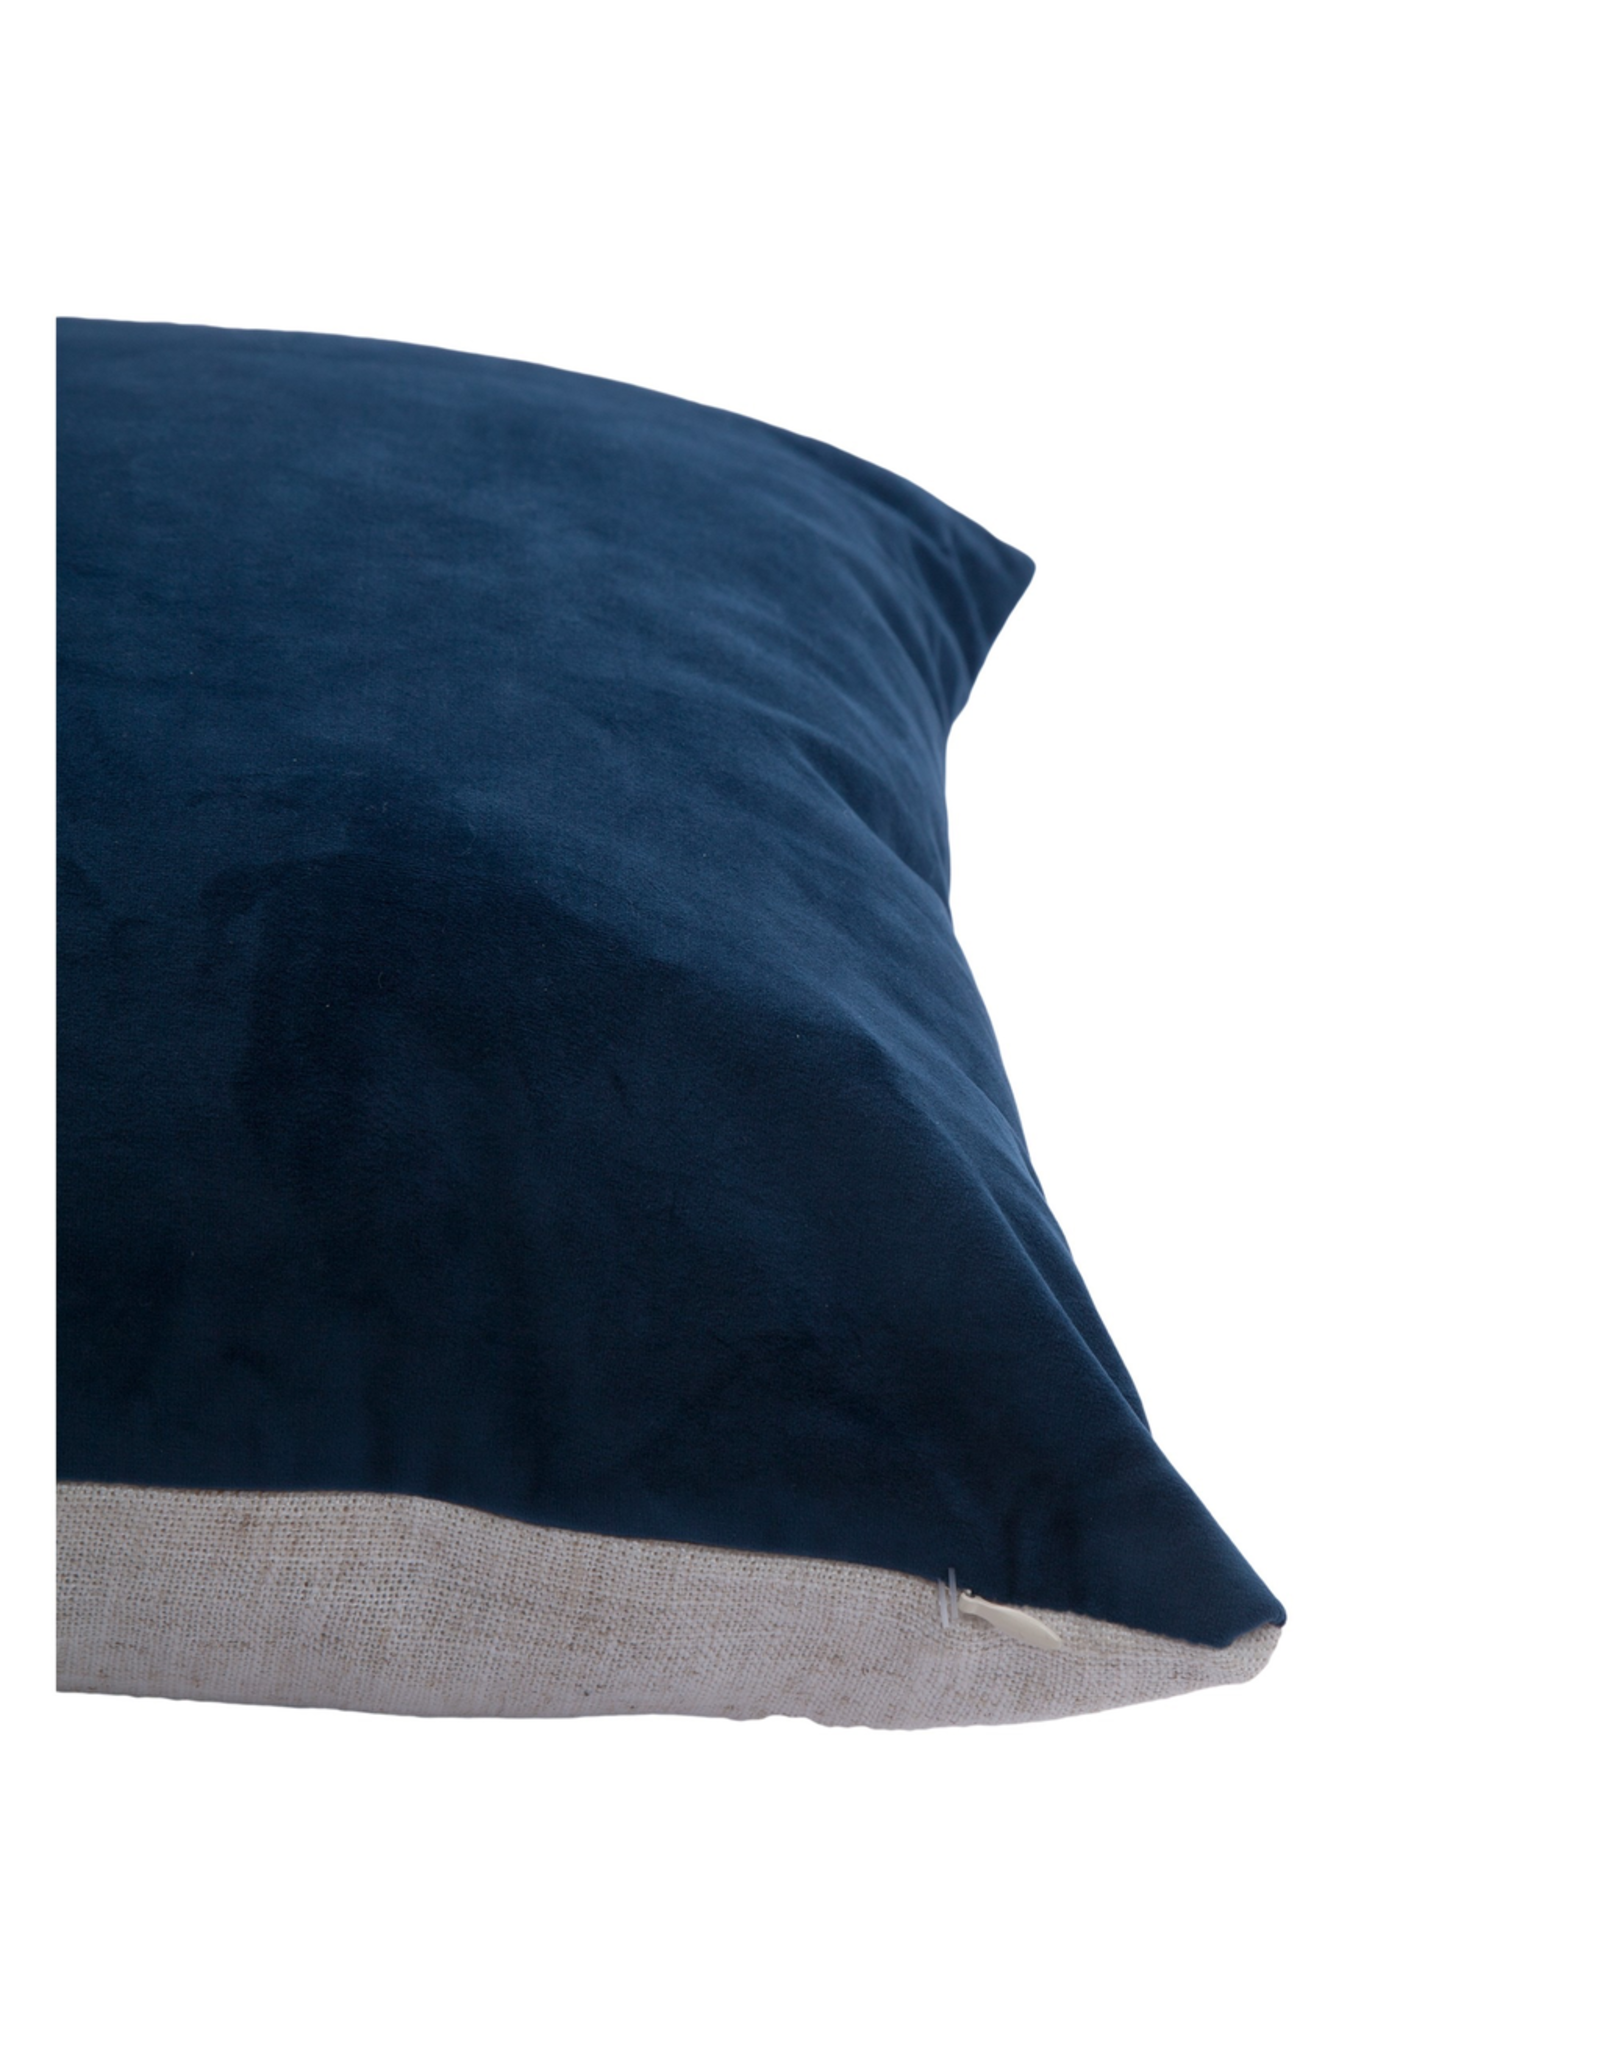 renwill Lapis Toss Cushion with Feather Filler 20X20